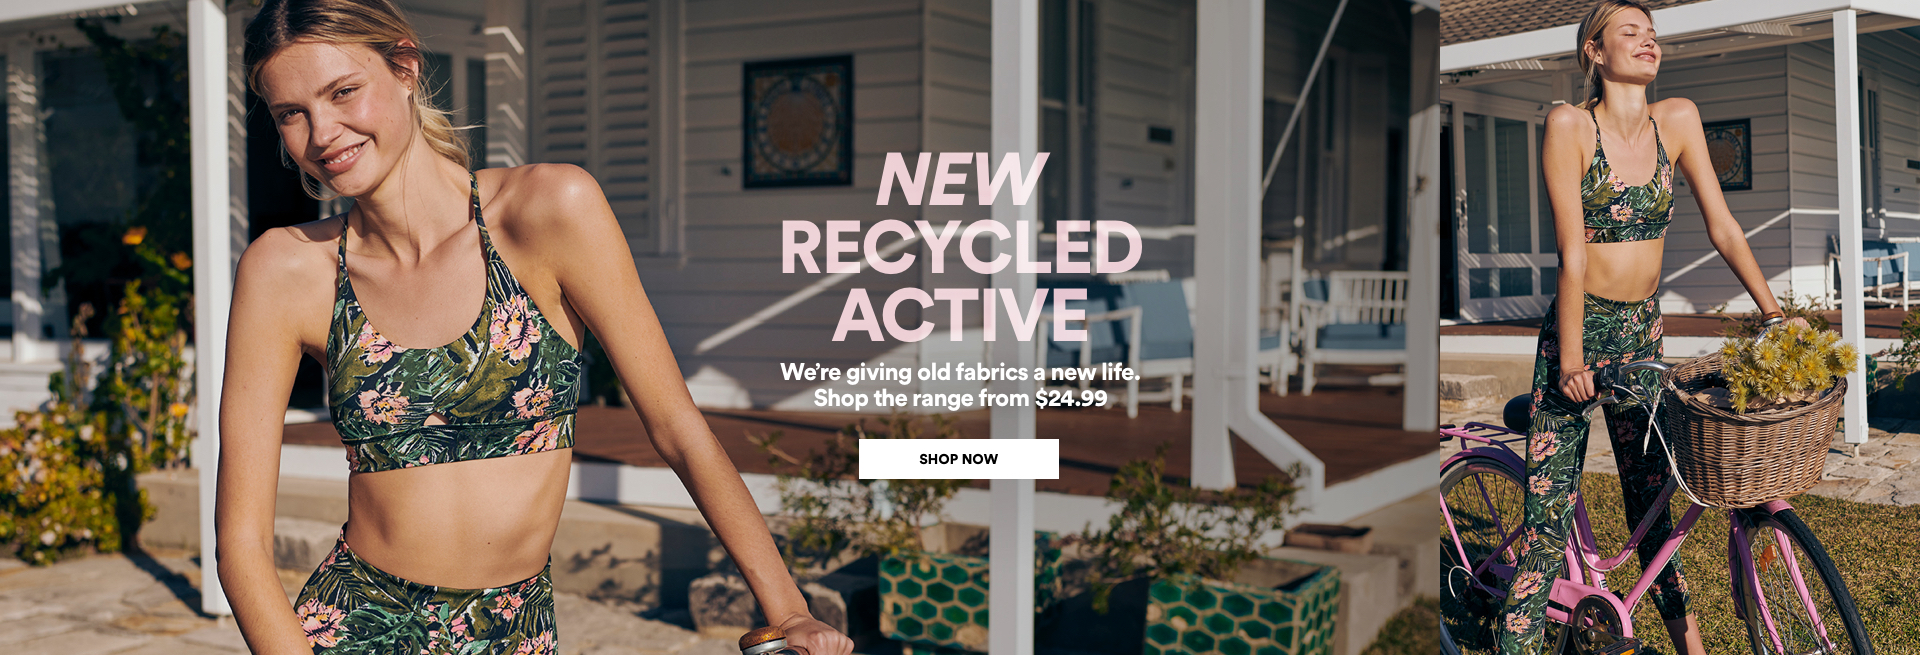 New Recycled Activewear. From $24.99. Click to Shop.